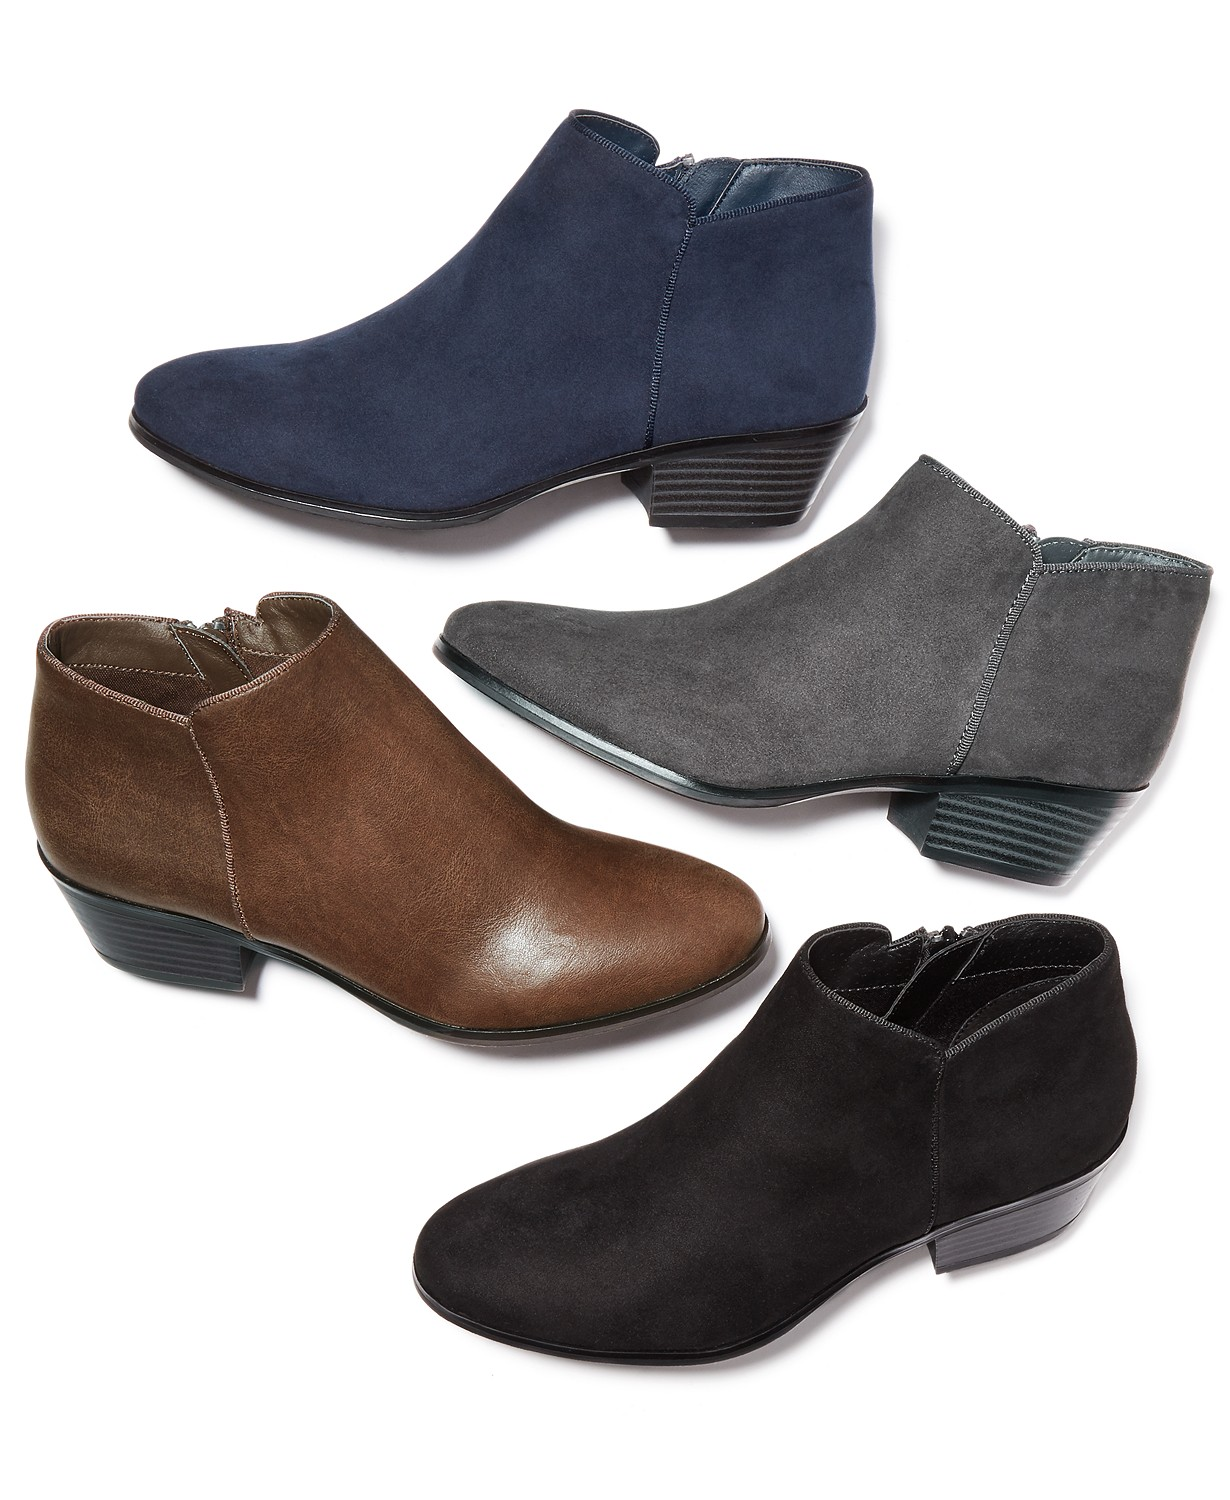 Save 28% on Style & Co Wileyy Ankle Booties